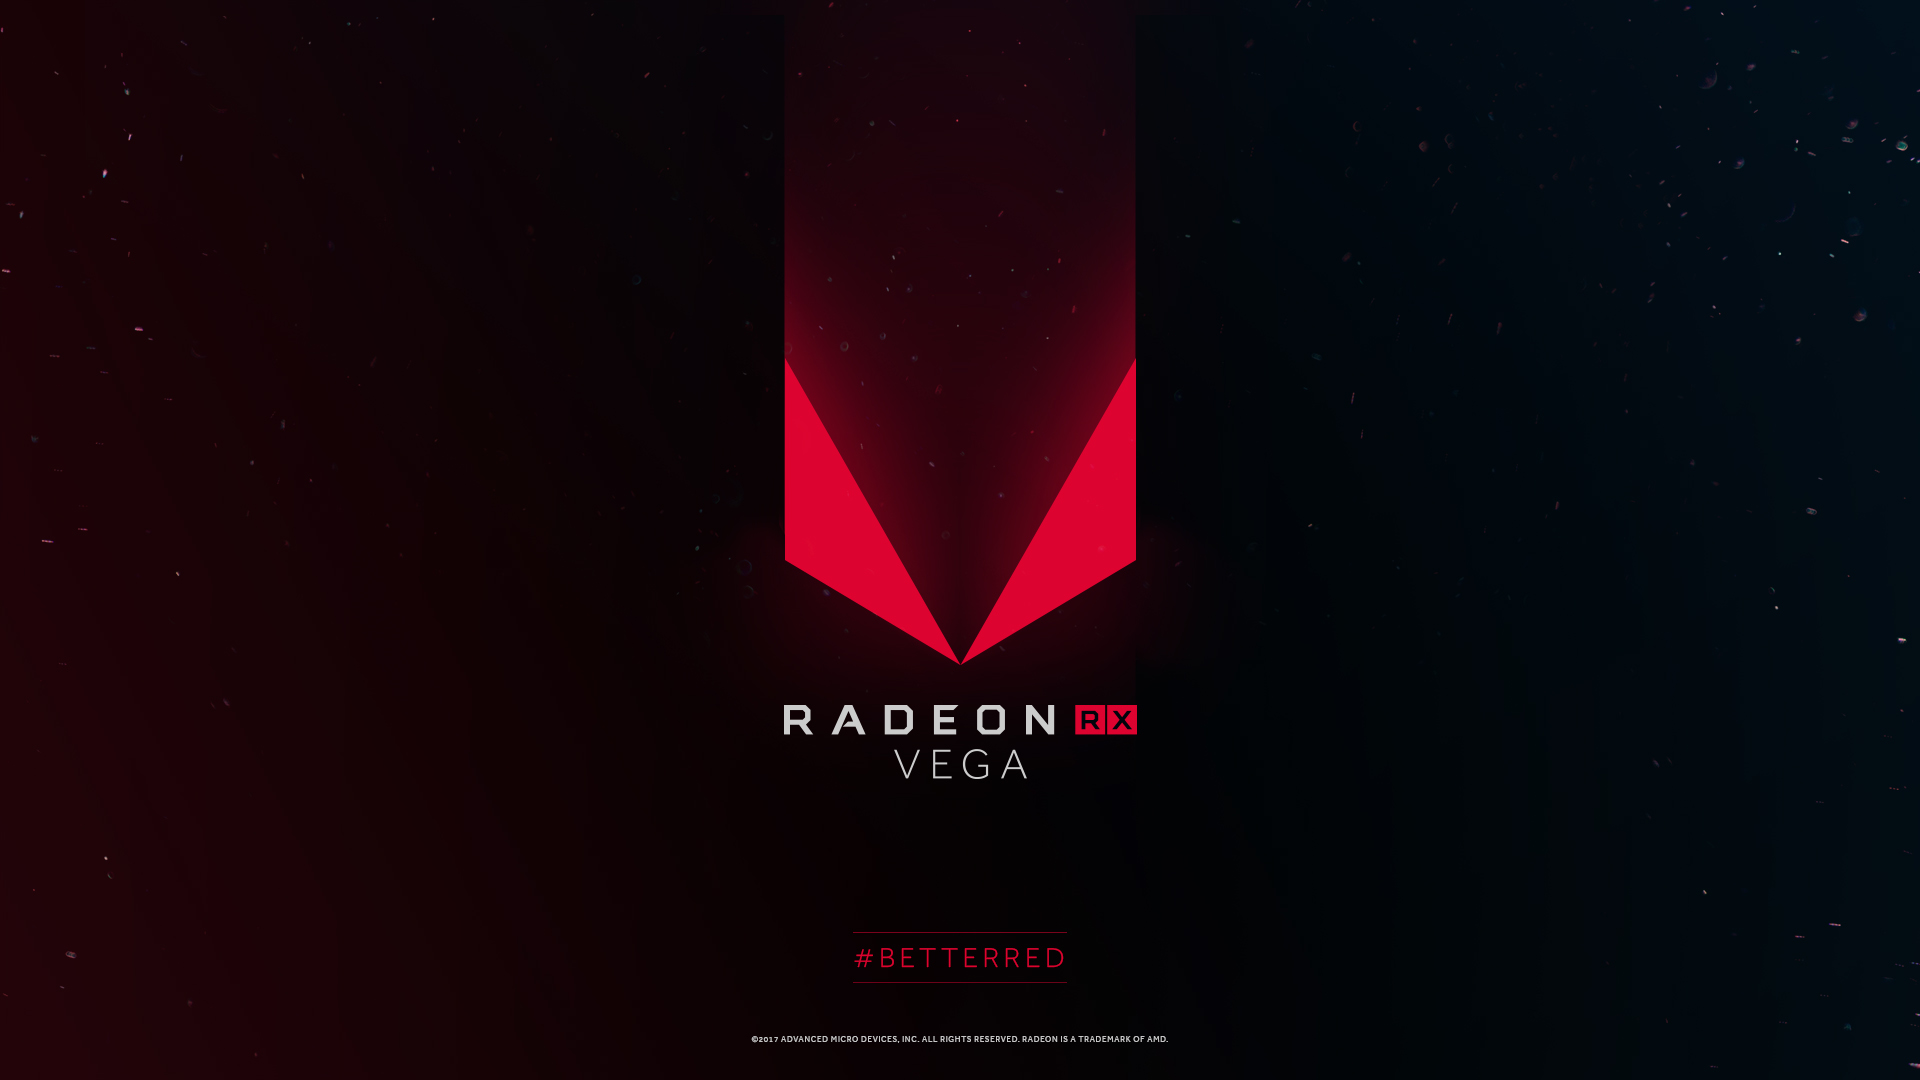 11204-RX-Vega-1080-wallpaper-1920x1080.jpg